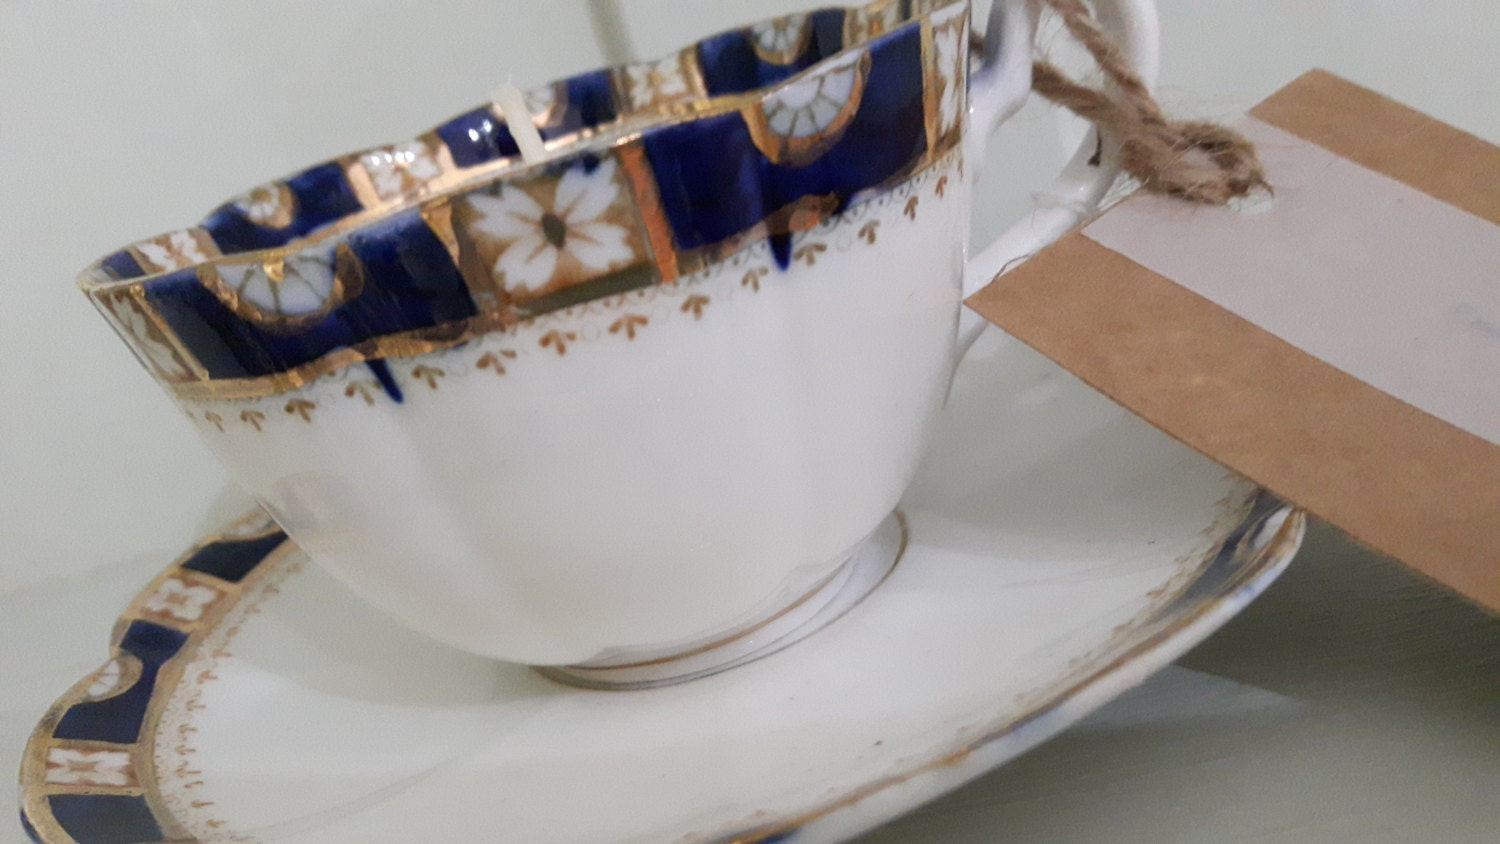 20 Hand poured scented soy wax vegan vintage tea cup candles.  Ideal wedding favours or decorations.  Scent of your choice